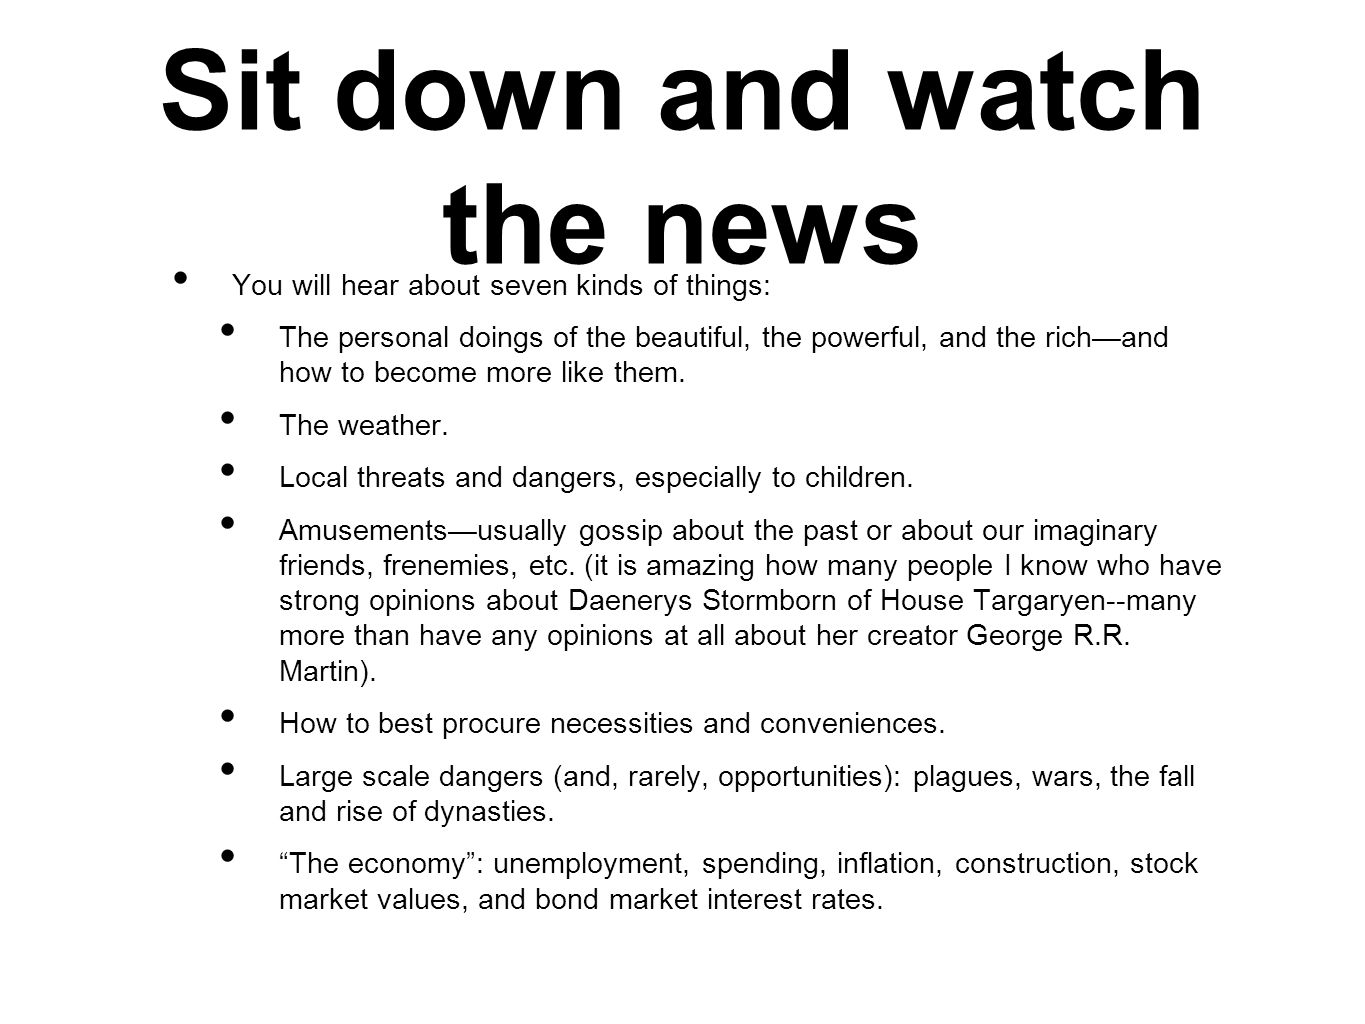 Sit down and watch the news You will hear about seven kinds of things: The personal doings of the beautiful, the powerful, and the richand how to become more like them.